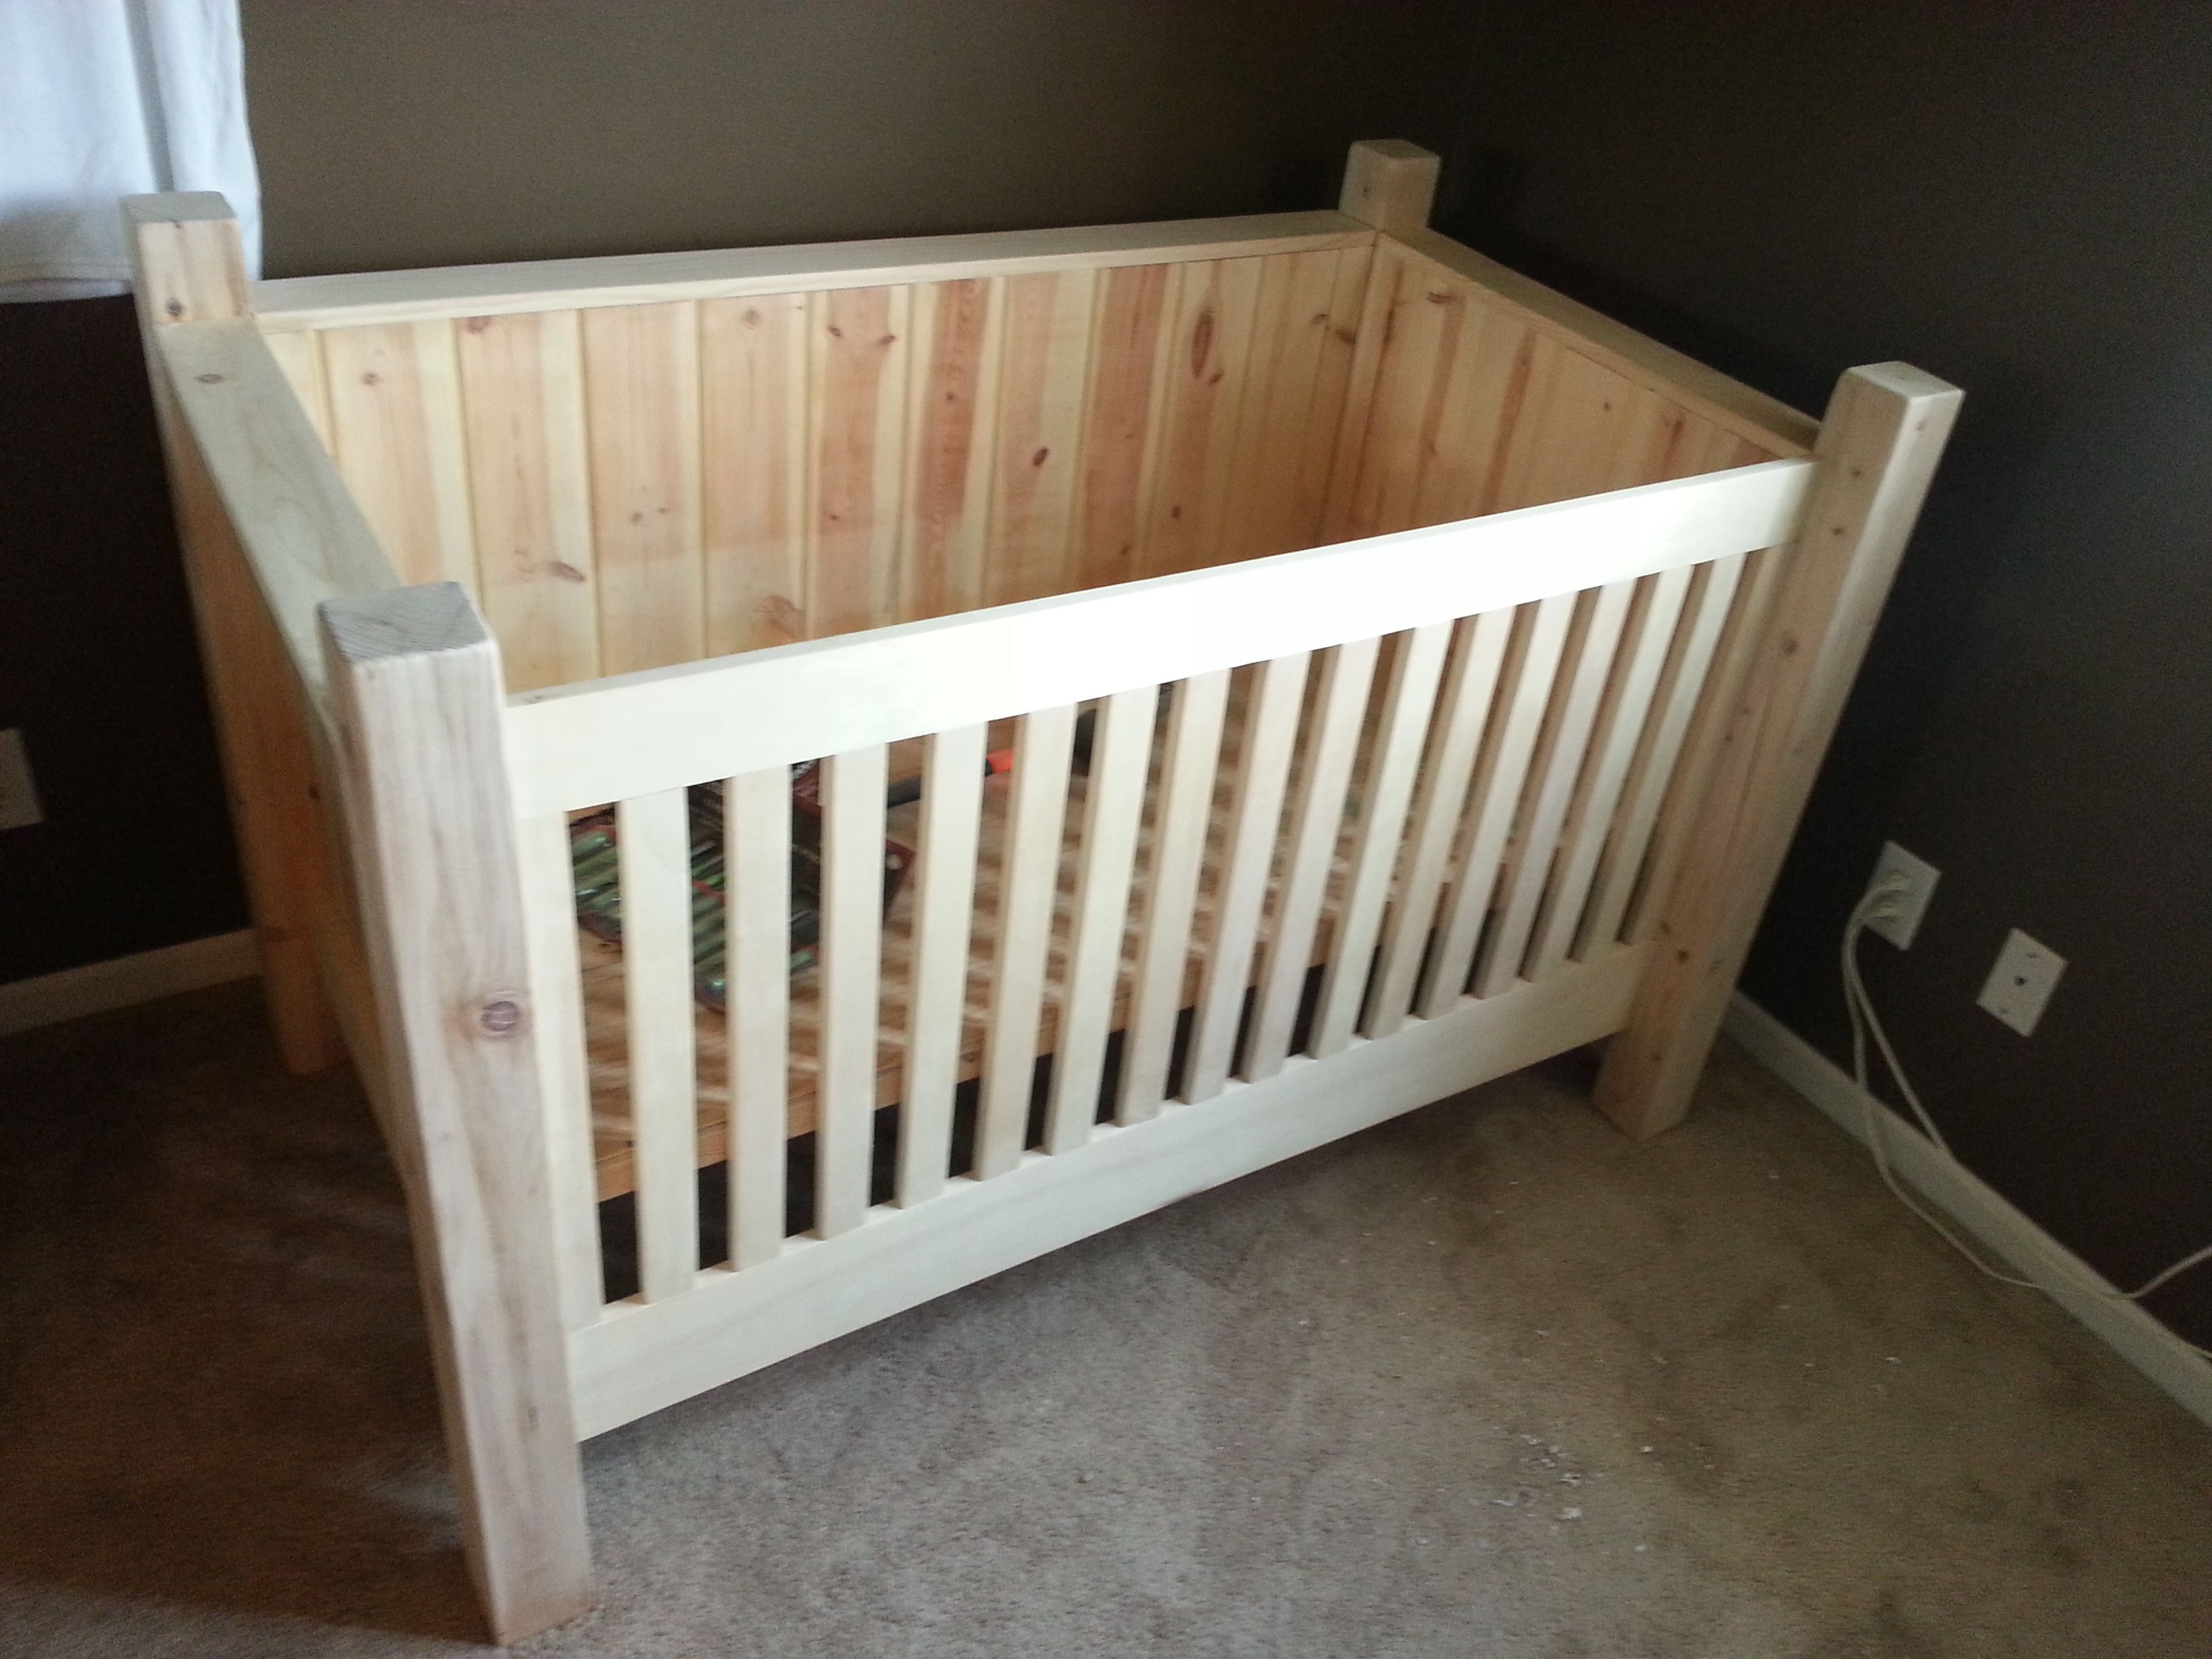 Wooden crib for babies - 25 Best Ideas About Wood Crib On Pinterest Boy Nursery Themes Cribs And Travel Nursery